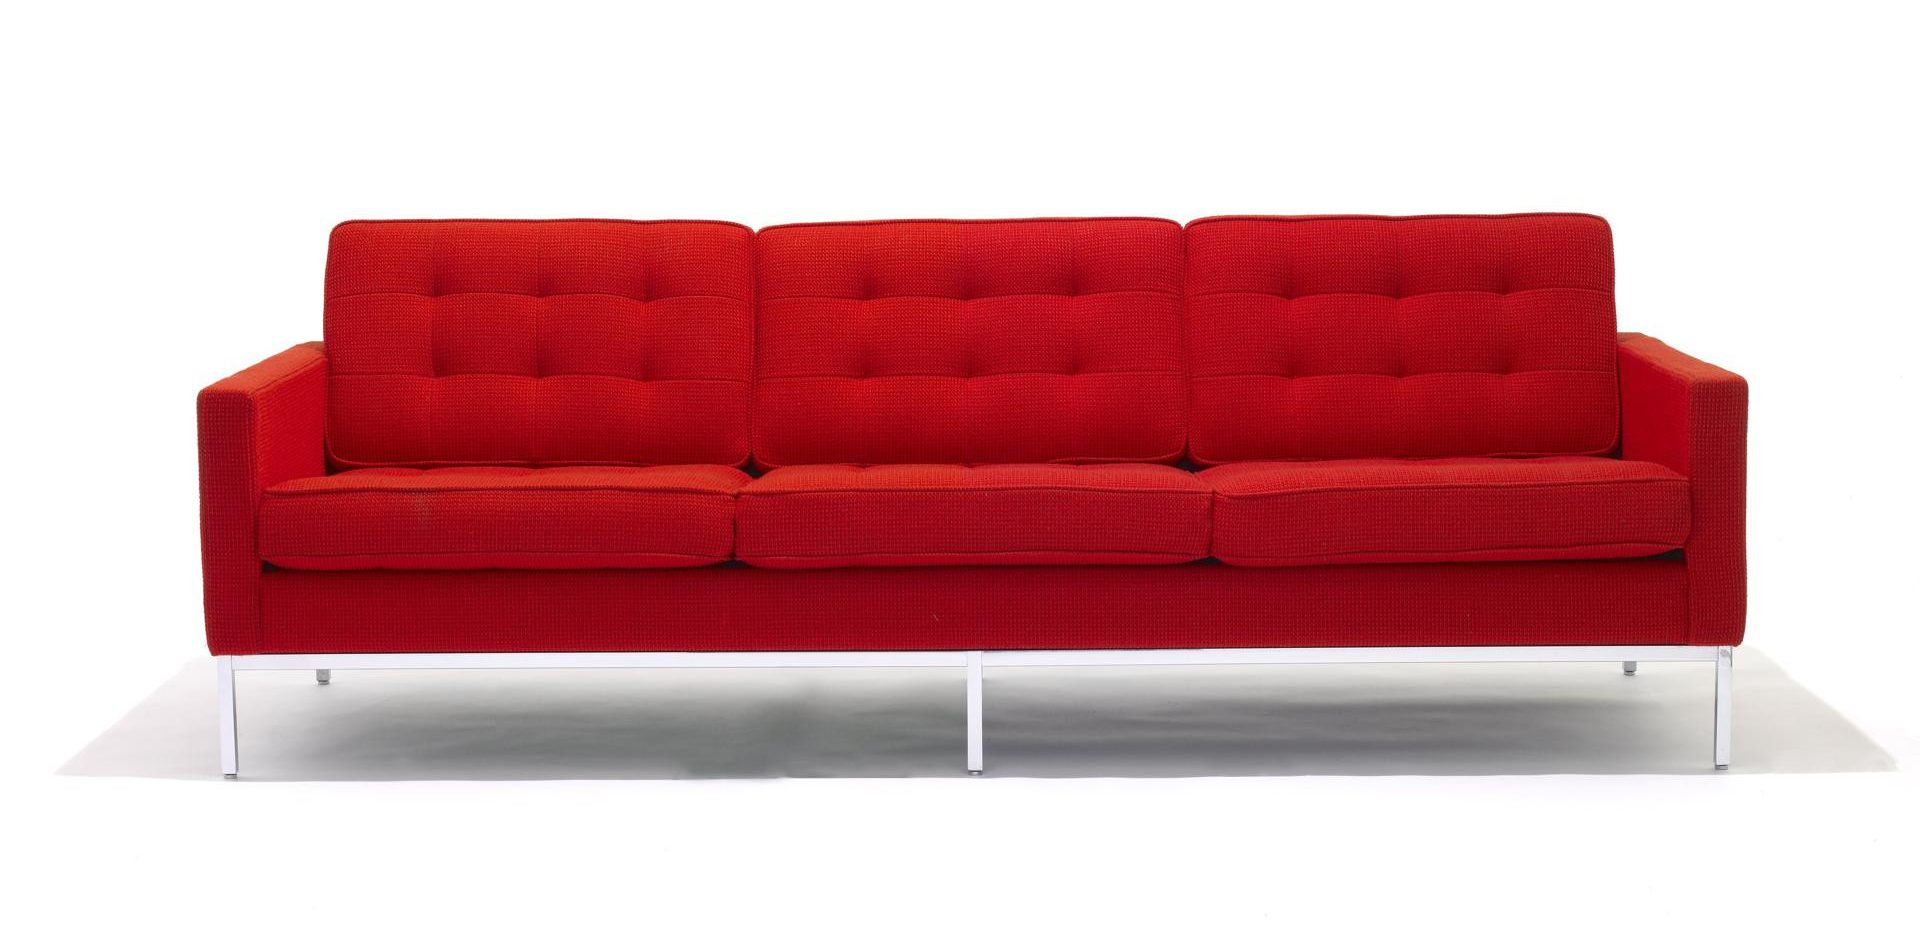 Knoll Florence Knoll 3 Seater Sofa Fabric Red Crop – Film Within Florence Knoll Fabric Sofas (View 15 of 15)